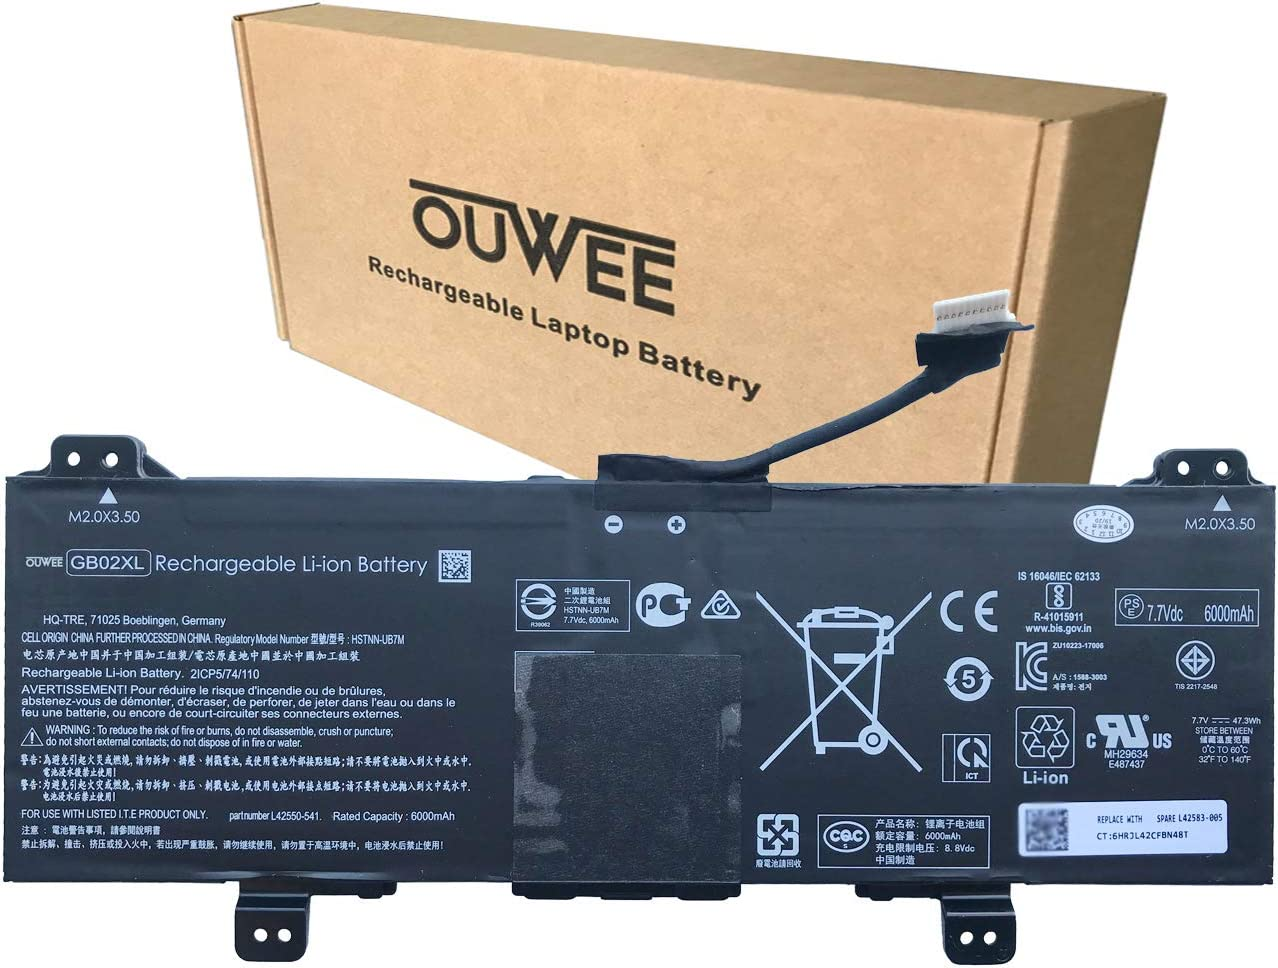 OUWEE GB02XL Laptop Battery Compatible with HP Chromebook x360 11 G2 EE Chromebook 11A G6 G8 EE Chromebook 11 G7 G8 EE Series L42550-271 L42550-541 HSTNN-UB7M HSTNN-DB7X L42583-005 7.7V 47.3Wh 6150mAh